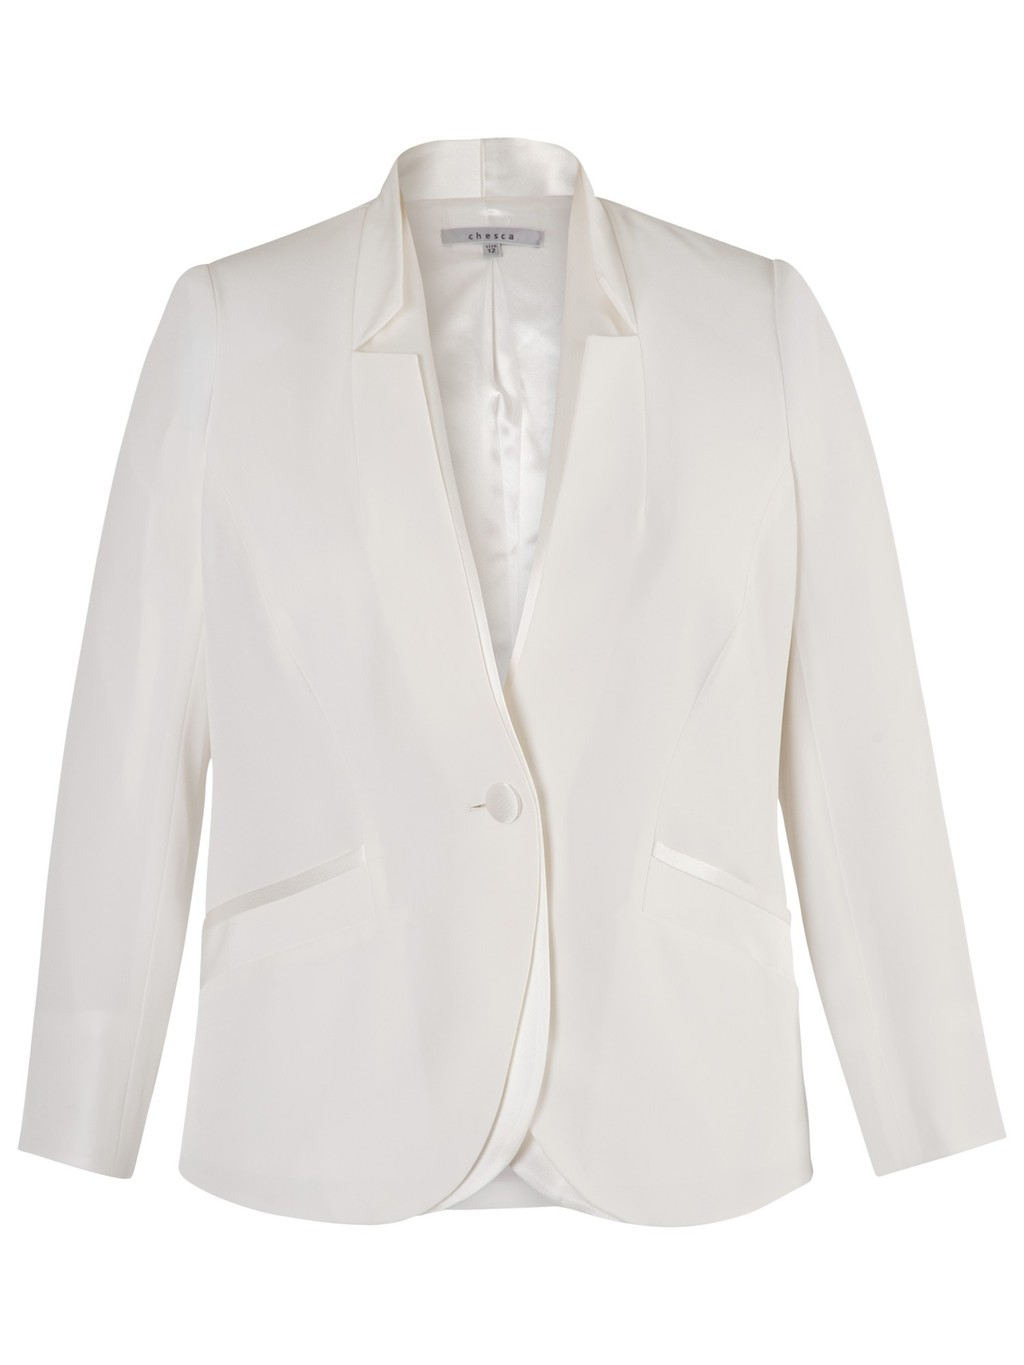 Notch Neck Satin Back Jacket, Ivory - pattern: plain; style: single breasted blazer; collar: round collar/collarless; predominant colour: ivory/cream; length: standard; fit: tailored/fitted; fibres: polyester/polyamide - mix; occasions: occasion, creative work; sleeve length: 3/4 length; sleeve style: standard; collar break: medium; pattern type: fabric; texture group: woven light midweight; season: s/s 2014